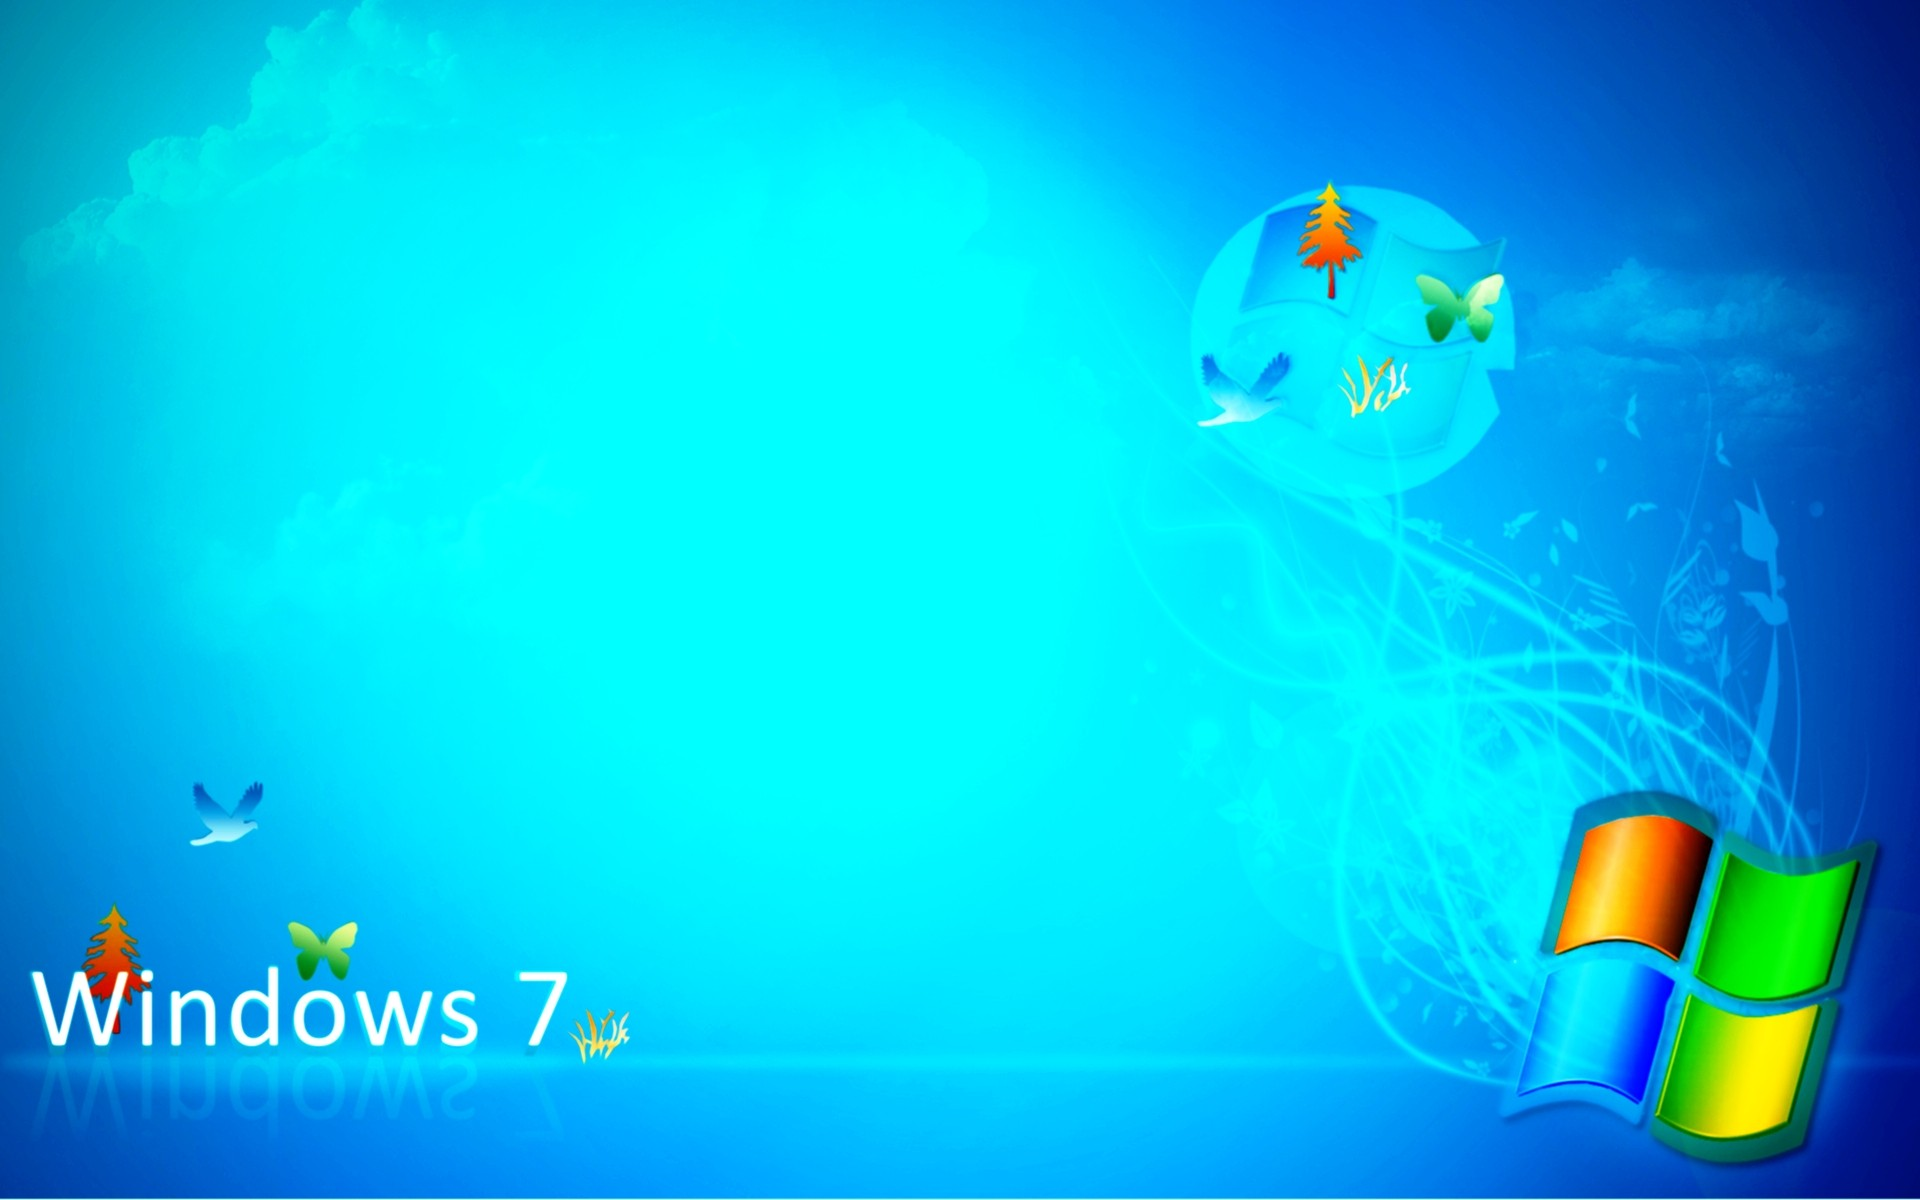 Download 3d desktop for windows 7 free